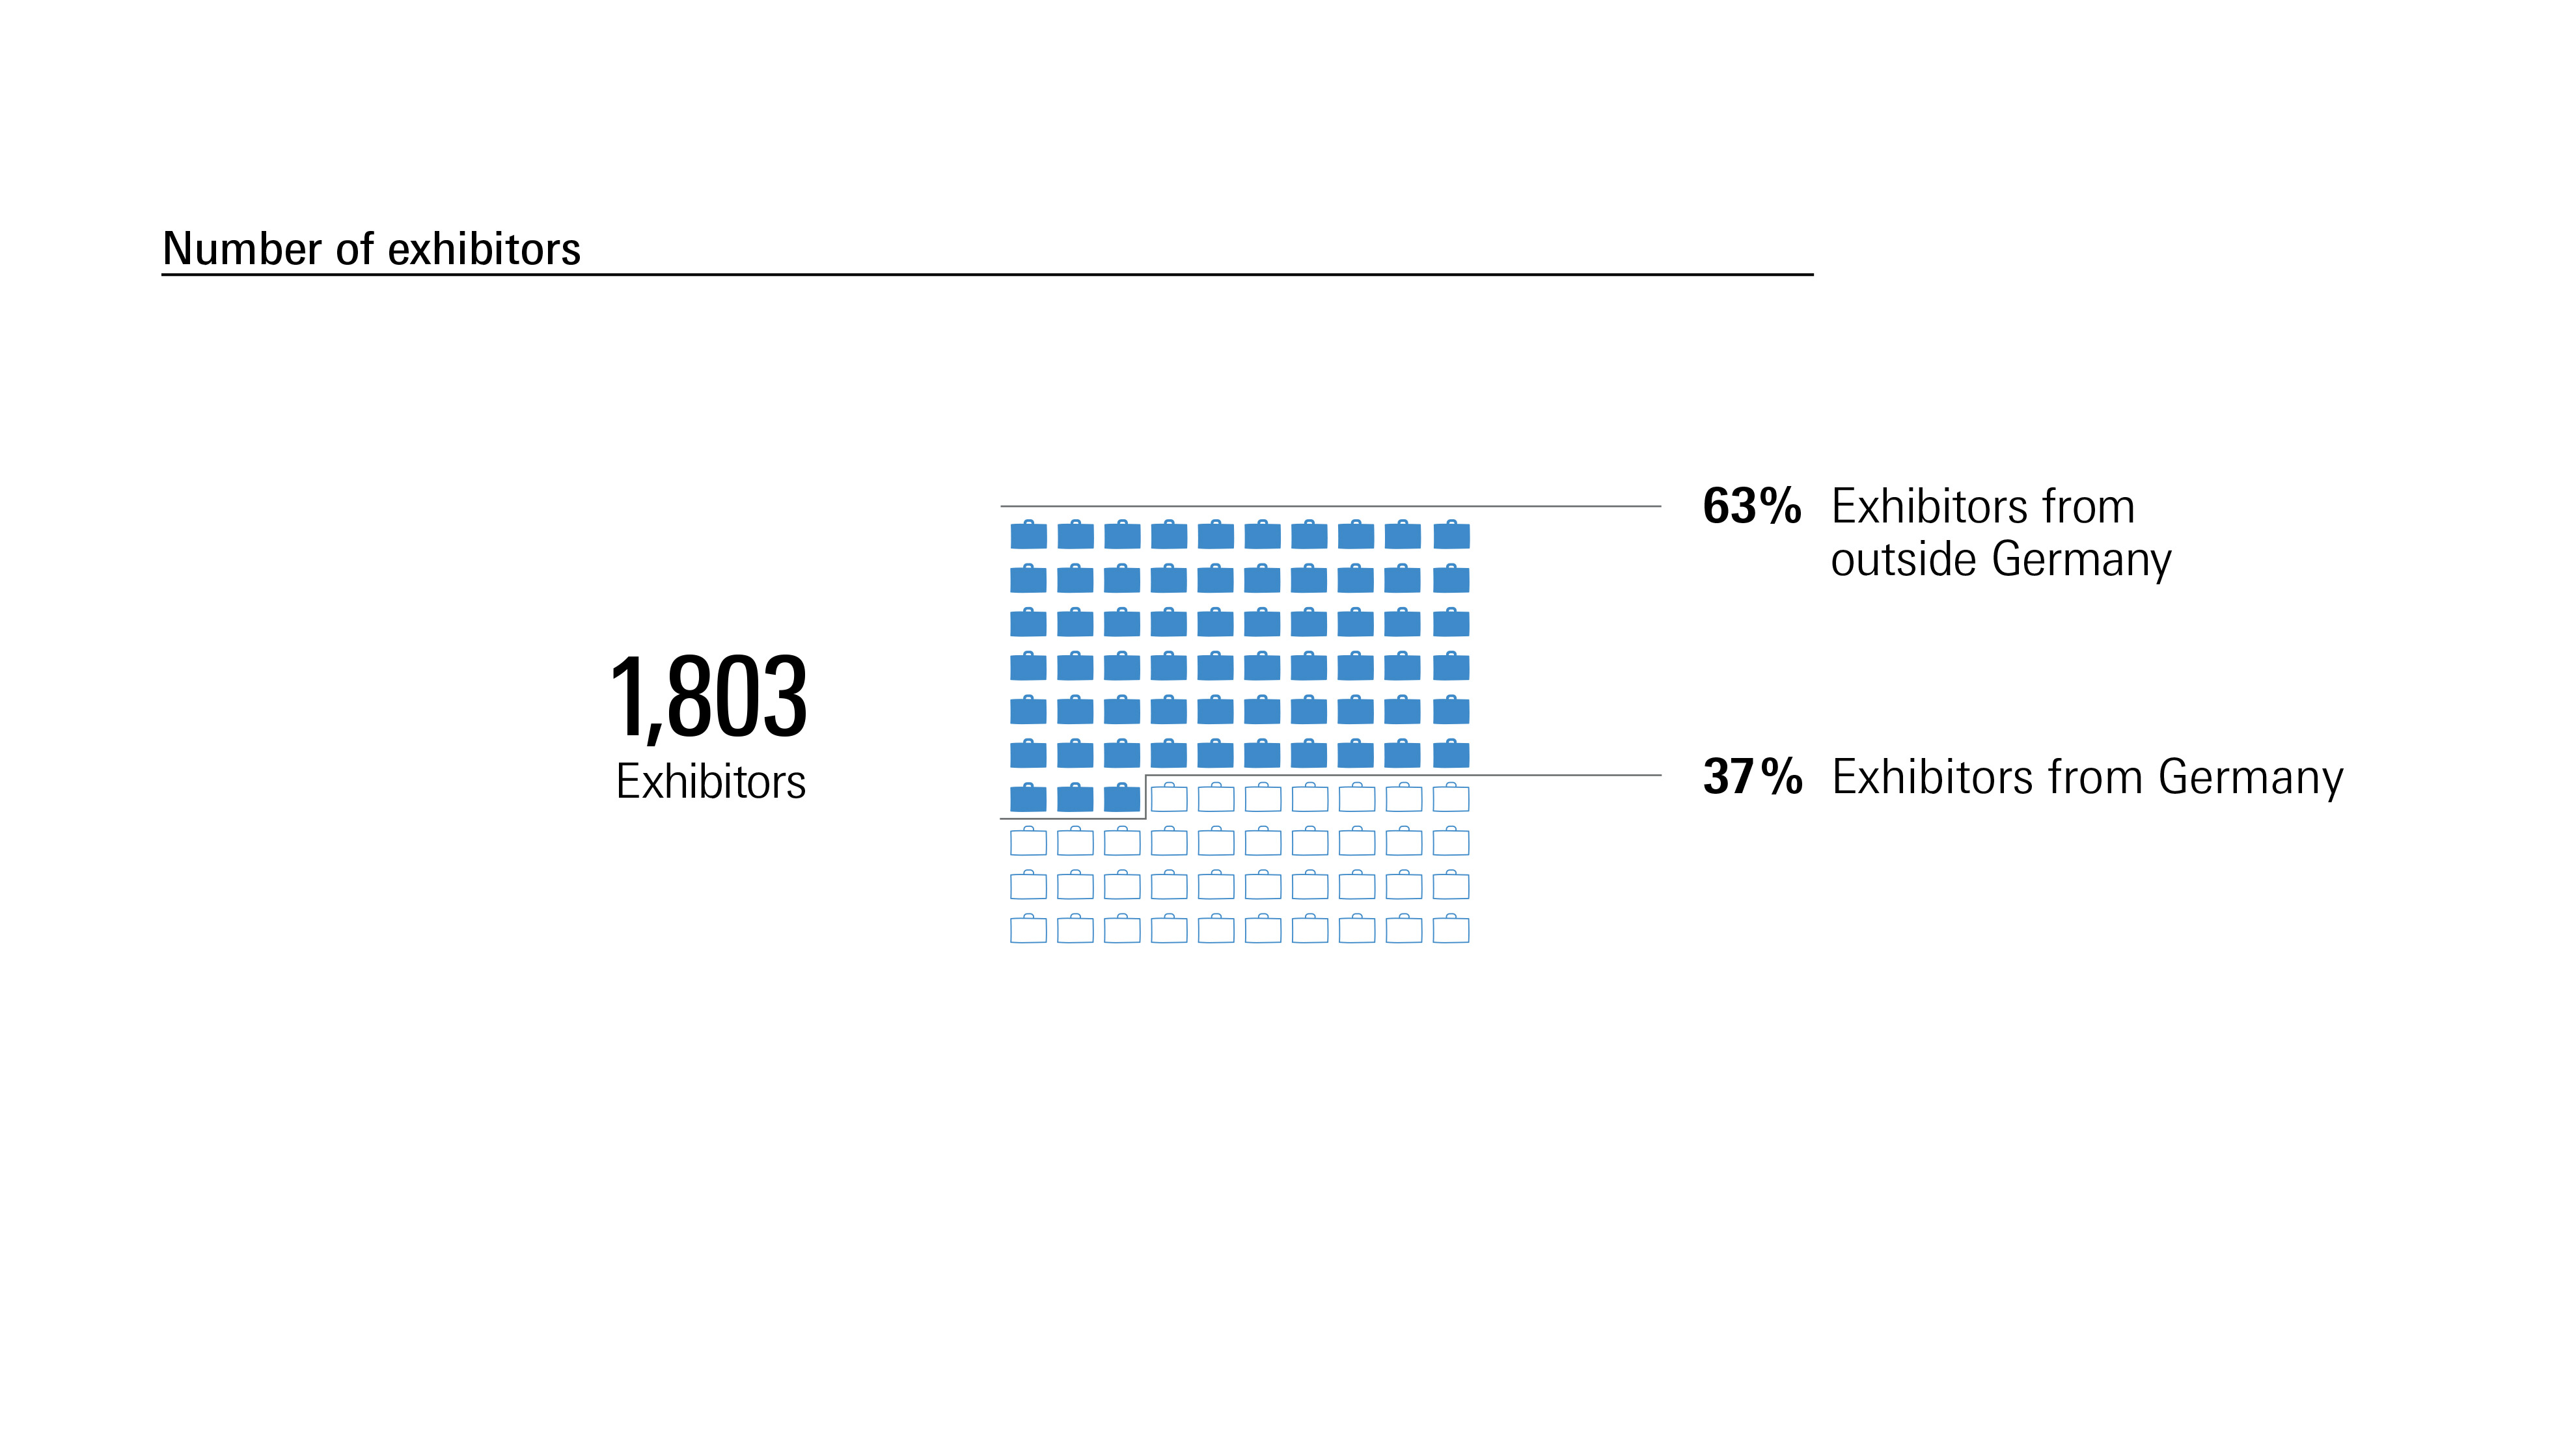 Prolight + Sound: Numbers of exhibitors 2018